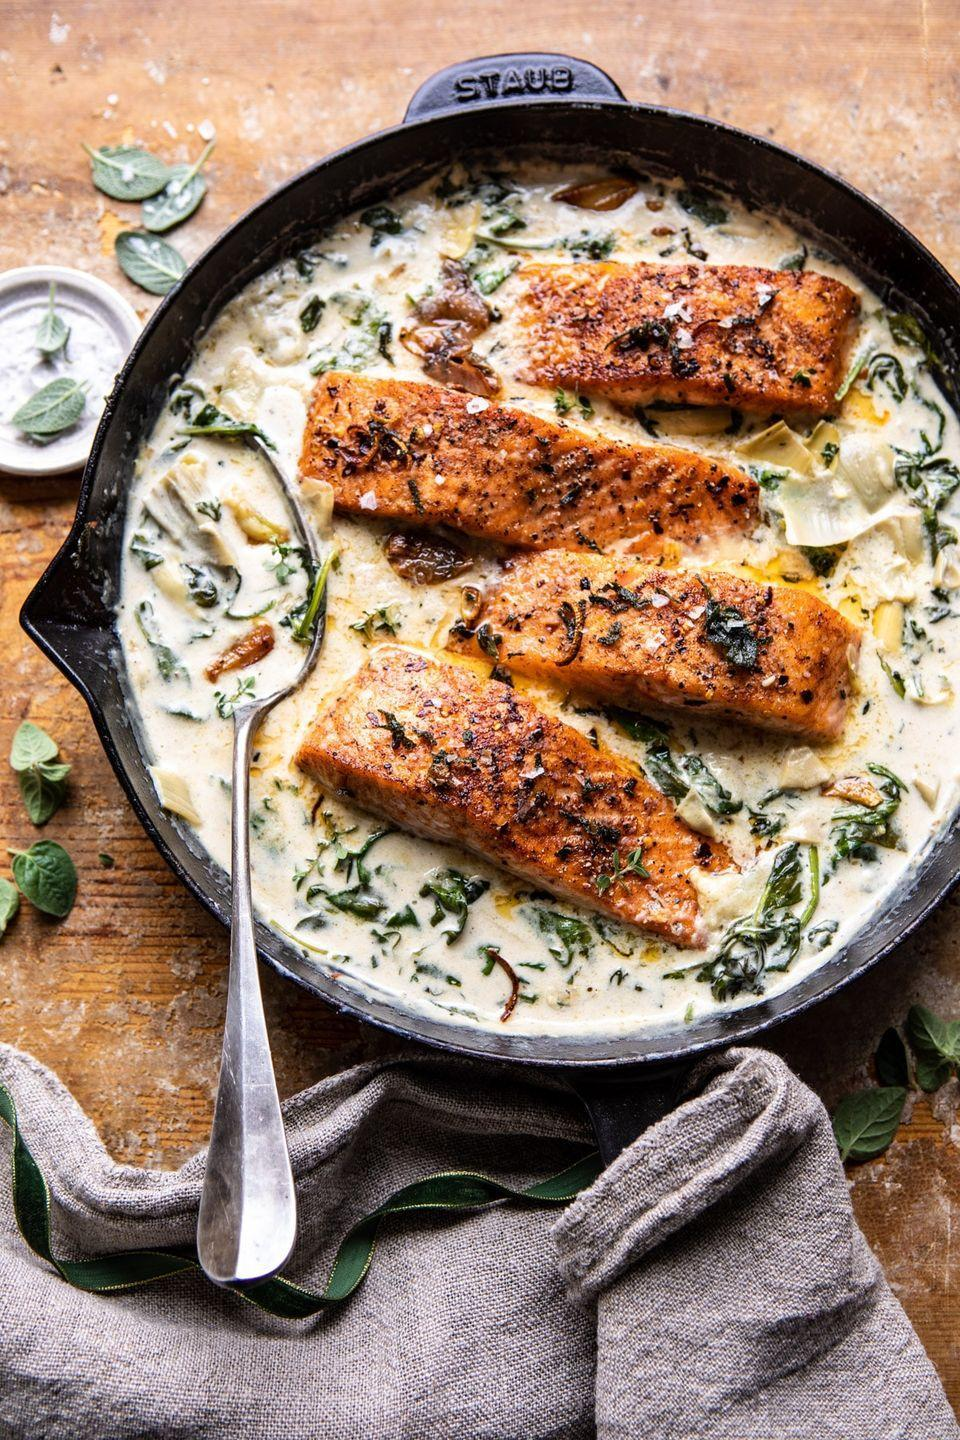 """<p>You can whip up this creamy, buttery salmon dish in just over a half hour. The best part is that it tastes <em>just</em> like spinach and artichoke dip.</p><p><strong>Get the recipe at <a href=""""https://www.halfbakedharvest.com/creamy-spinach-and-artichoke-salmon/"""" rel=""""nofollow noopener"""" target=""""_blank"""" data-ylk=""""slk:Half Baked Harvest"""" class=""""link rapid-noclick-resp"""">Half Baked Harvest</a>.</strong></p><p><strong><strong><a class=""""link rapid-noclick-resp"""" href=""""https://www.amazon.com/Seasoned-Cast-Skillet-Utopia-Kitchen/dp/B00X4WQMAS?tag=syn-yahoo-20&ascsubtag=%5Bartid%7C10063.g.35055779%5Bsrc%7Cyahoo-us"""" rel=""""nofollow noopener"""" target=""""_blank"""" data-ylk=""""slk:SHOP CAST IRON SKILLETS"""">SHOP CAST IRON SKILLETS</a></strong><br></strong></p>"""